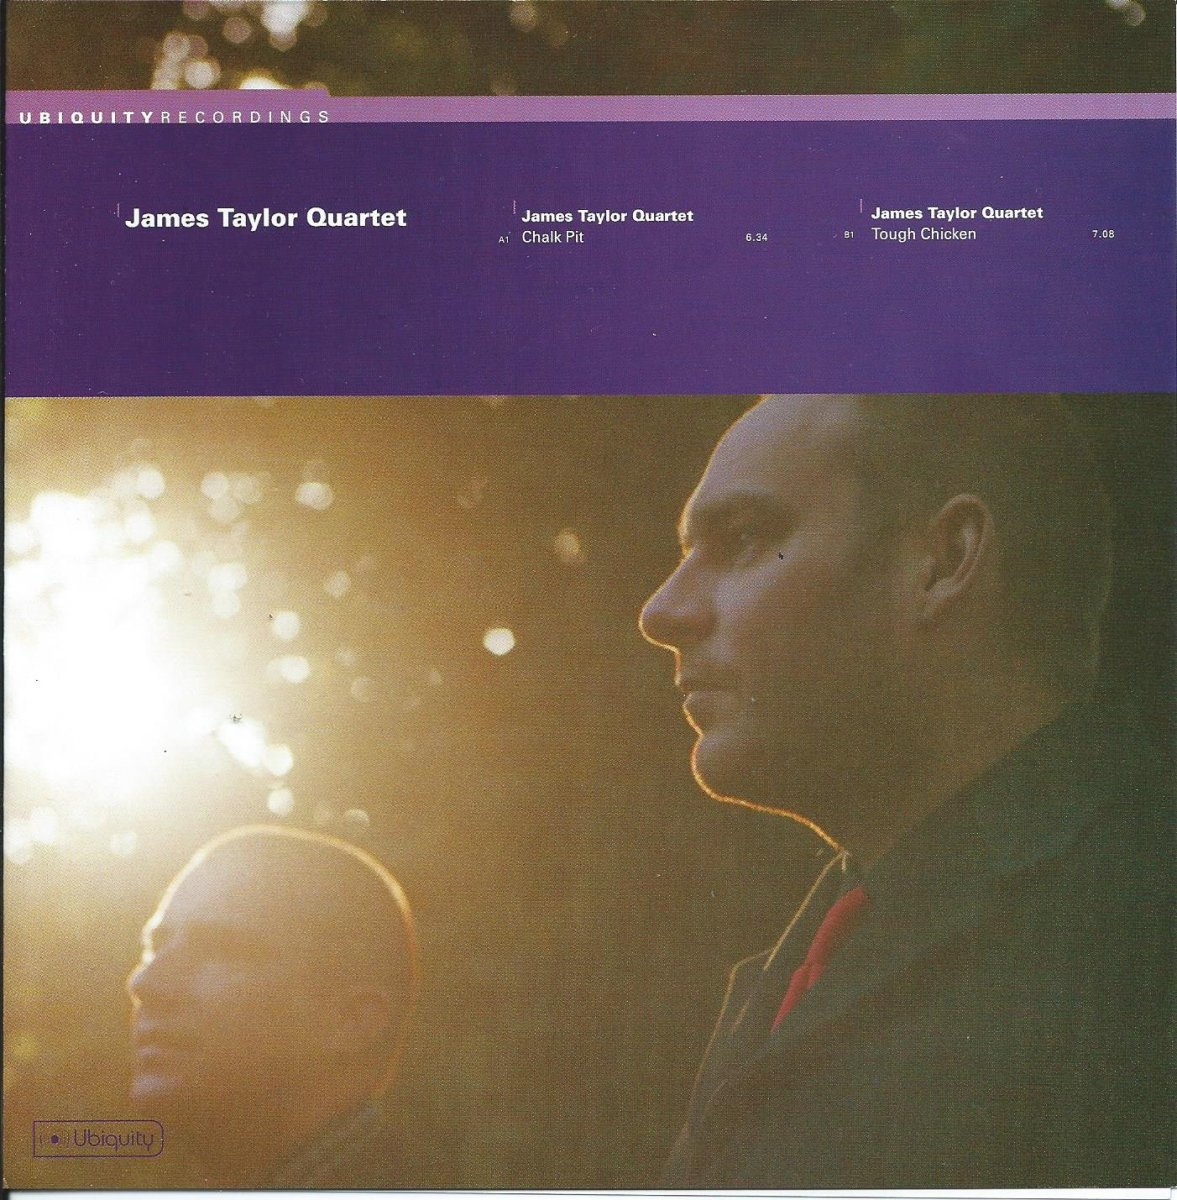 THE JAMES TAYLOR QUARTET / CHALK PIT / TOUGH CHICKEN (7